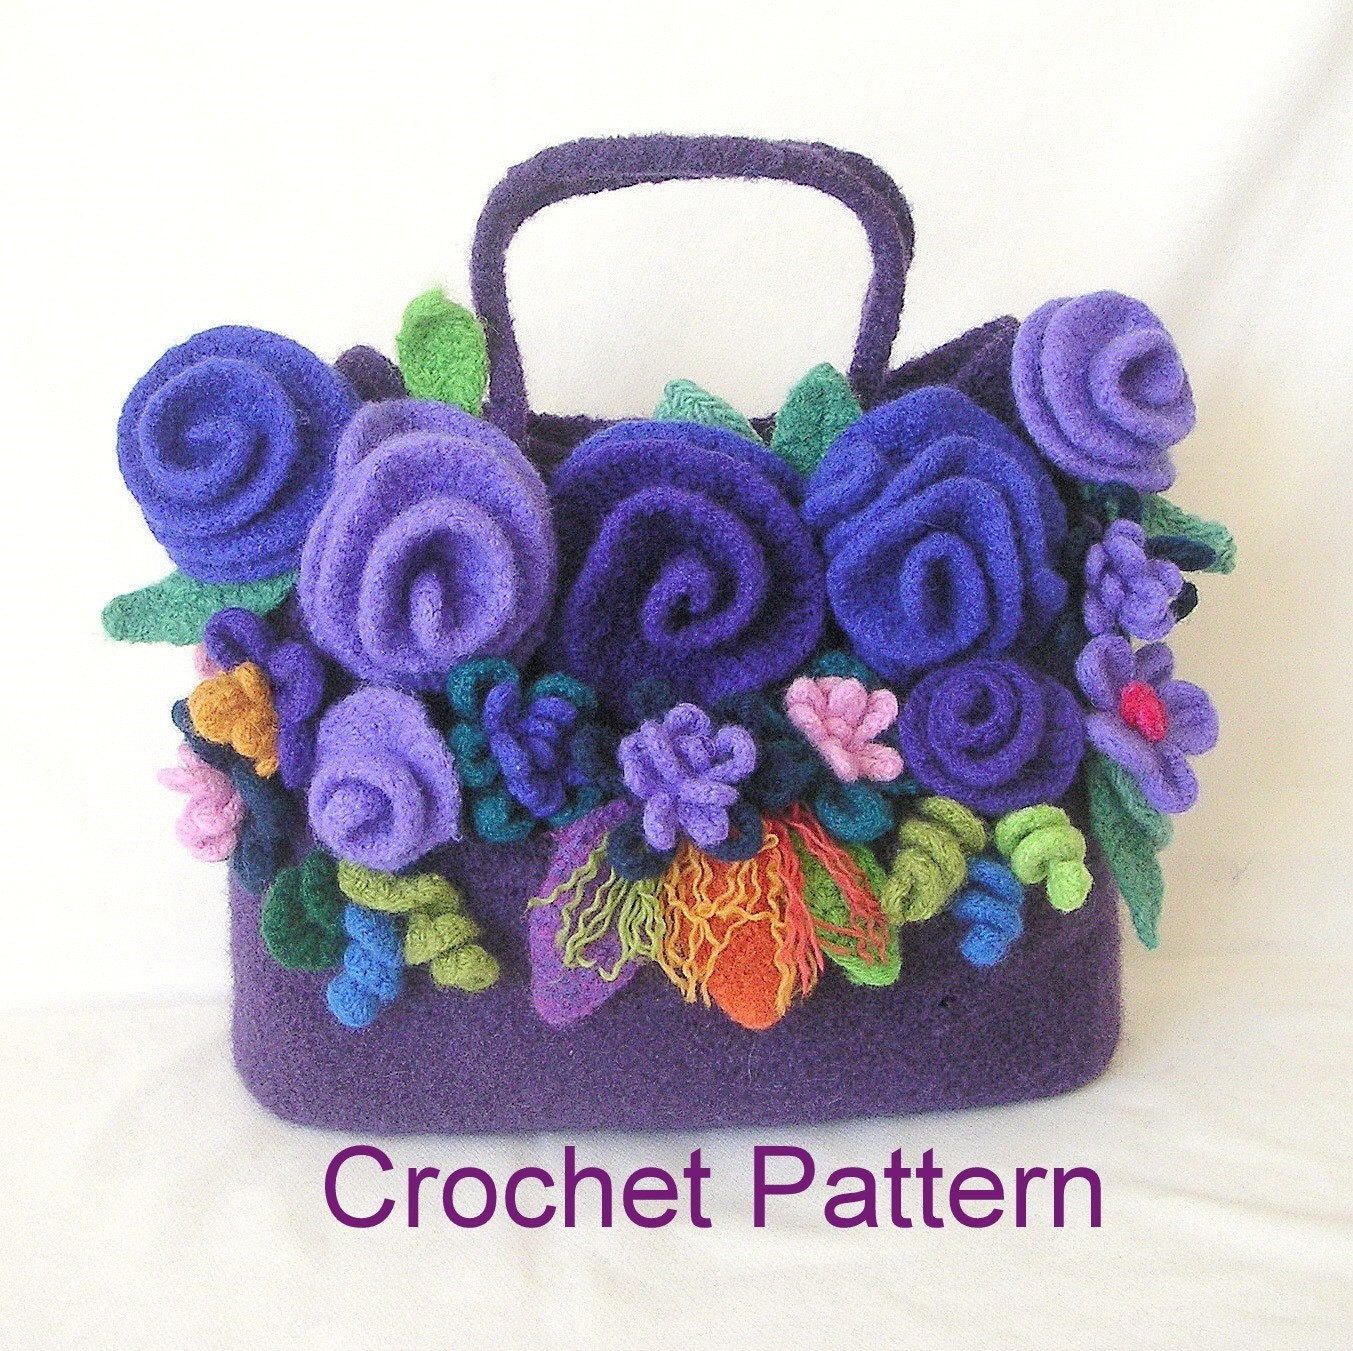 Crochet Flower Bag Pattern Tutorial pdf Crochet Felted by GraceG2